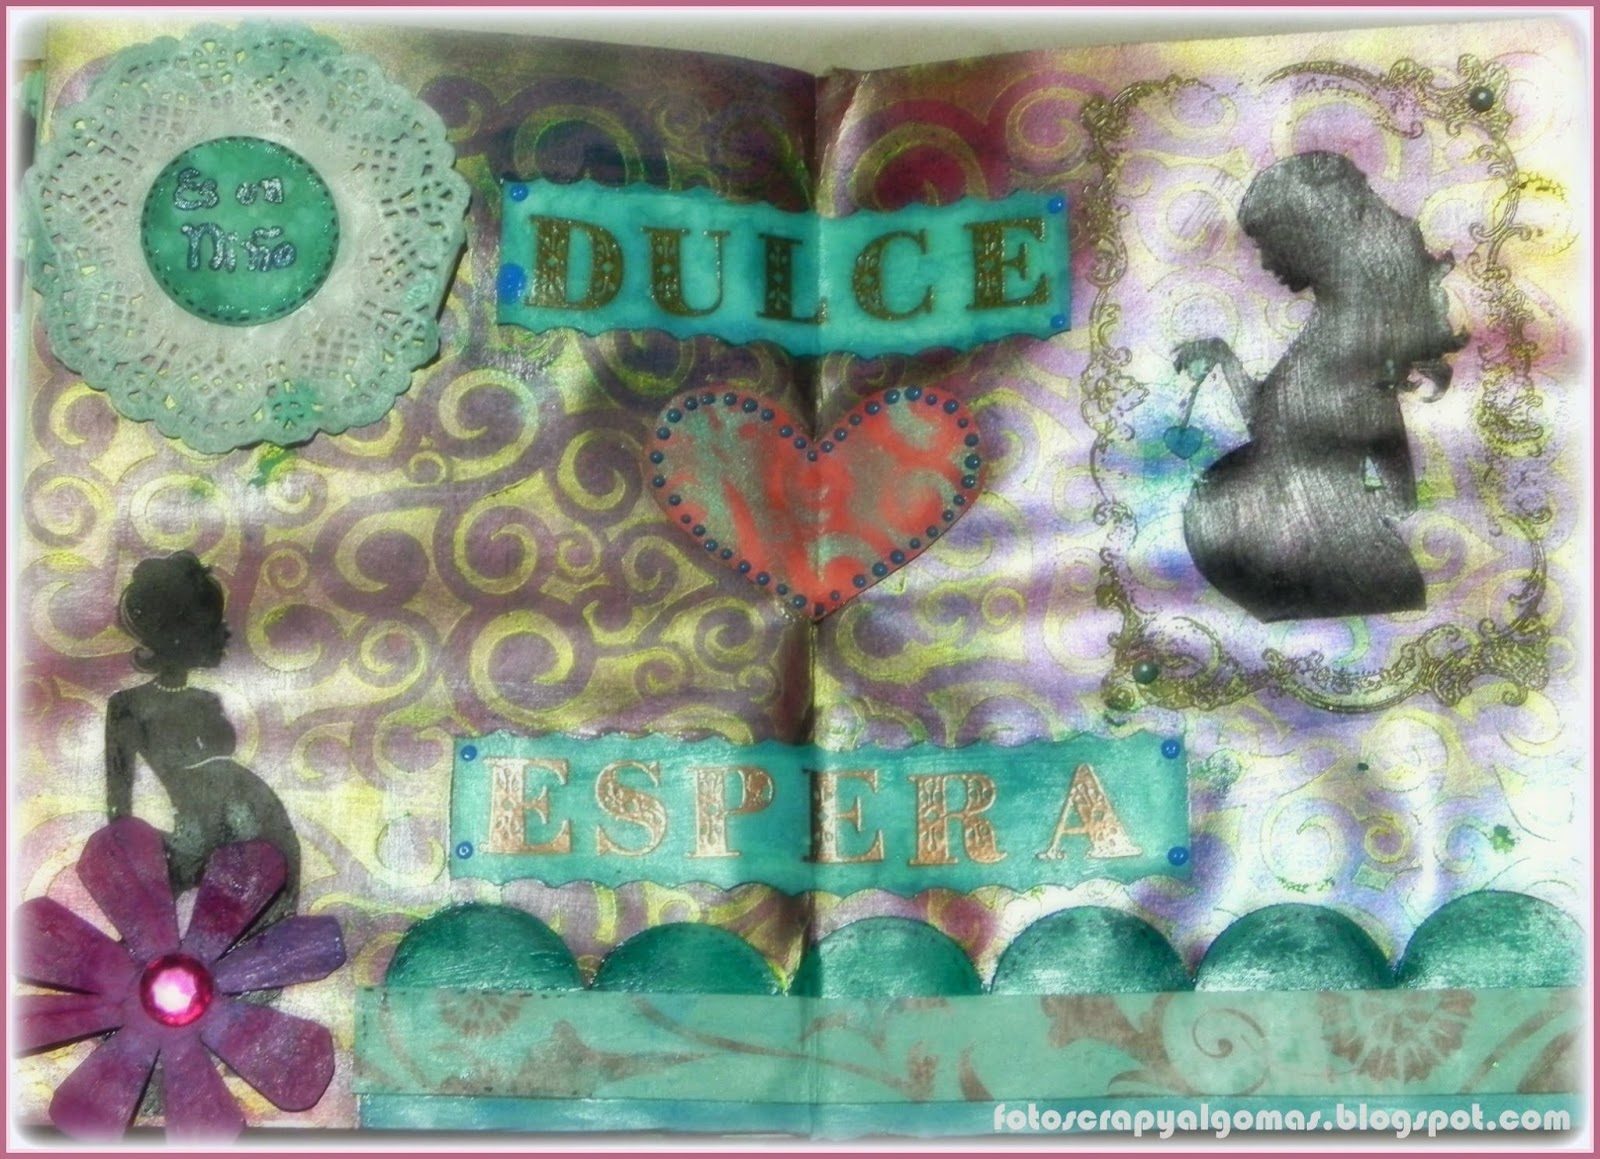 Mixed Media - Art journal